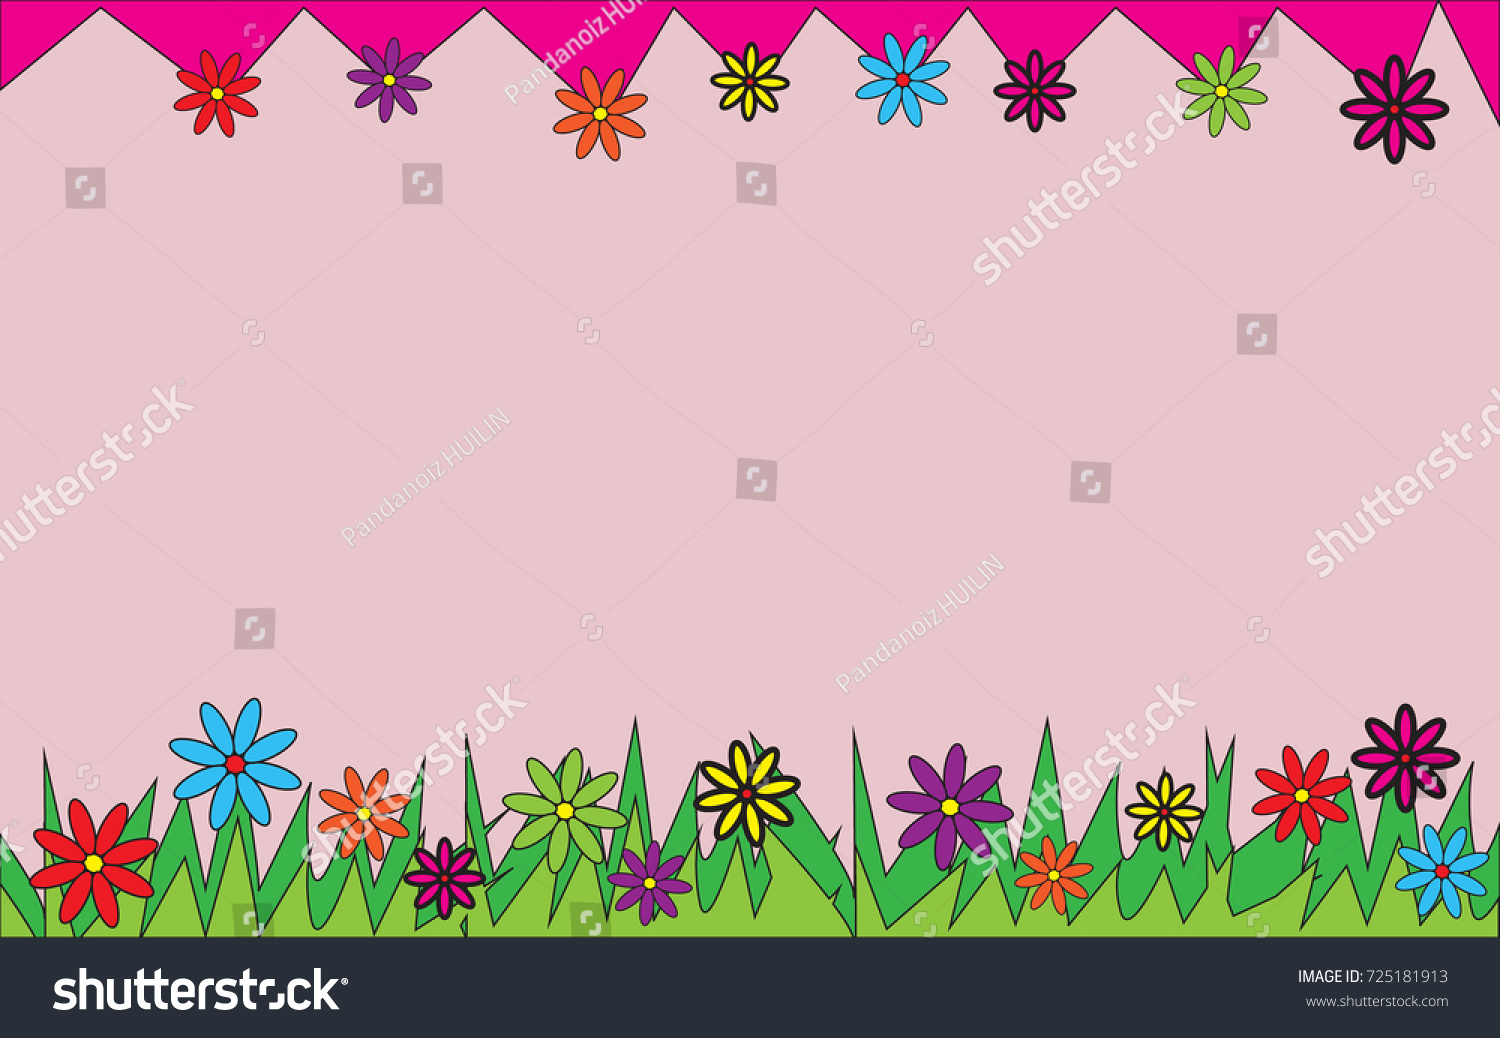 Simple Flower Wallpapercolorful Backgroundvector Stock Vector 725181913